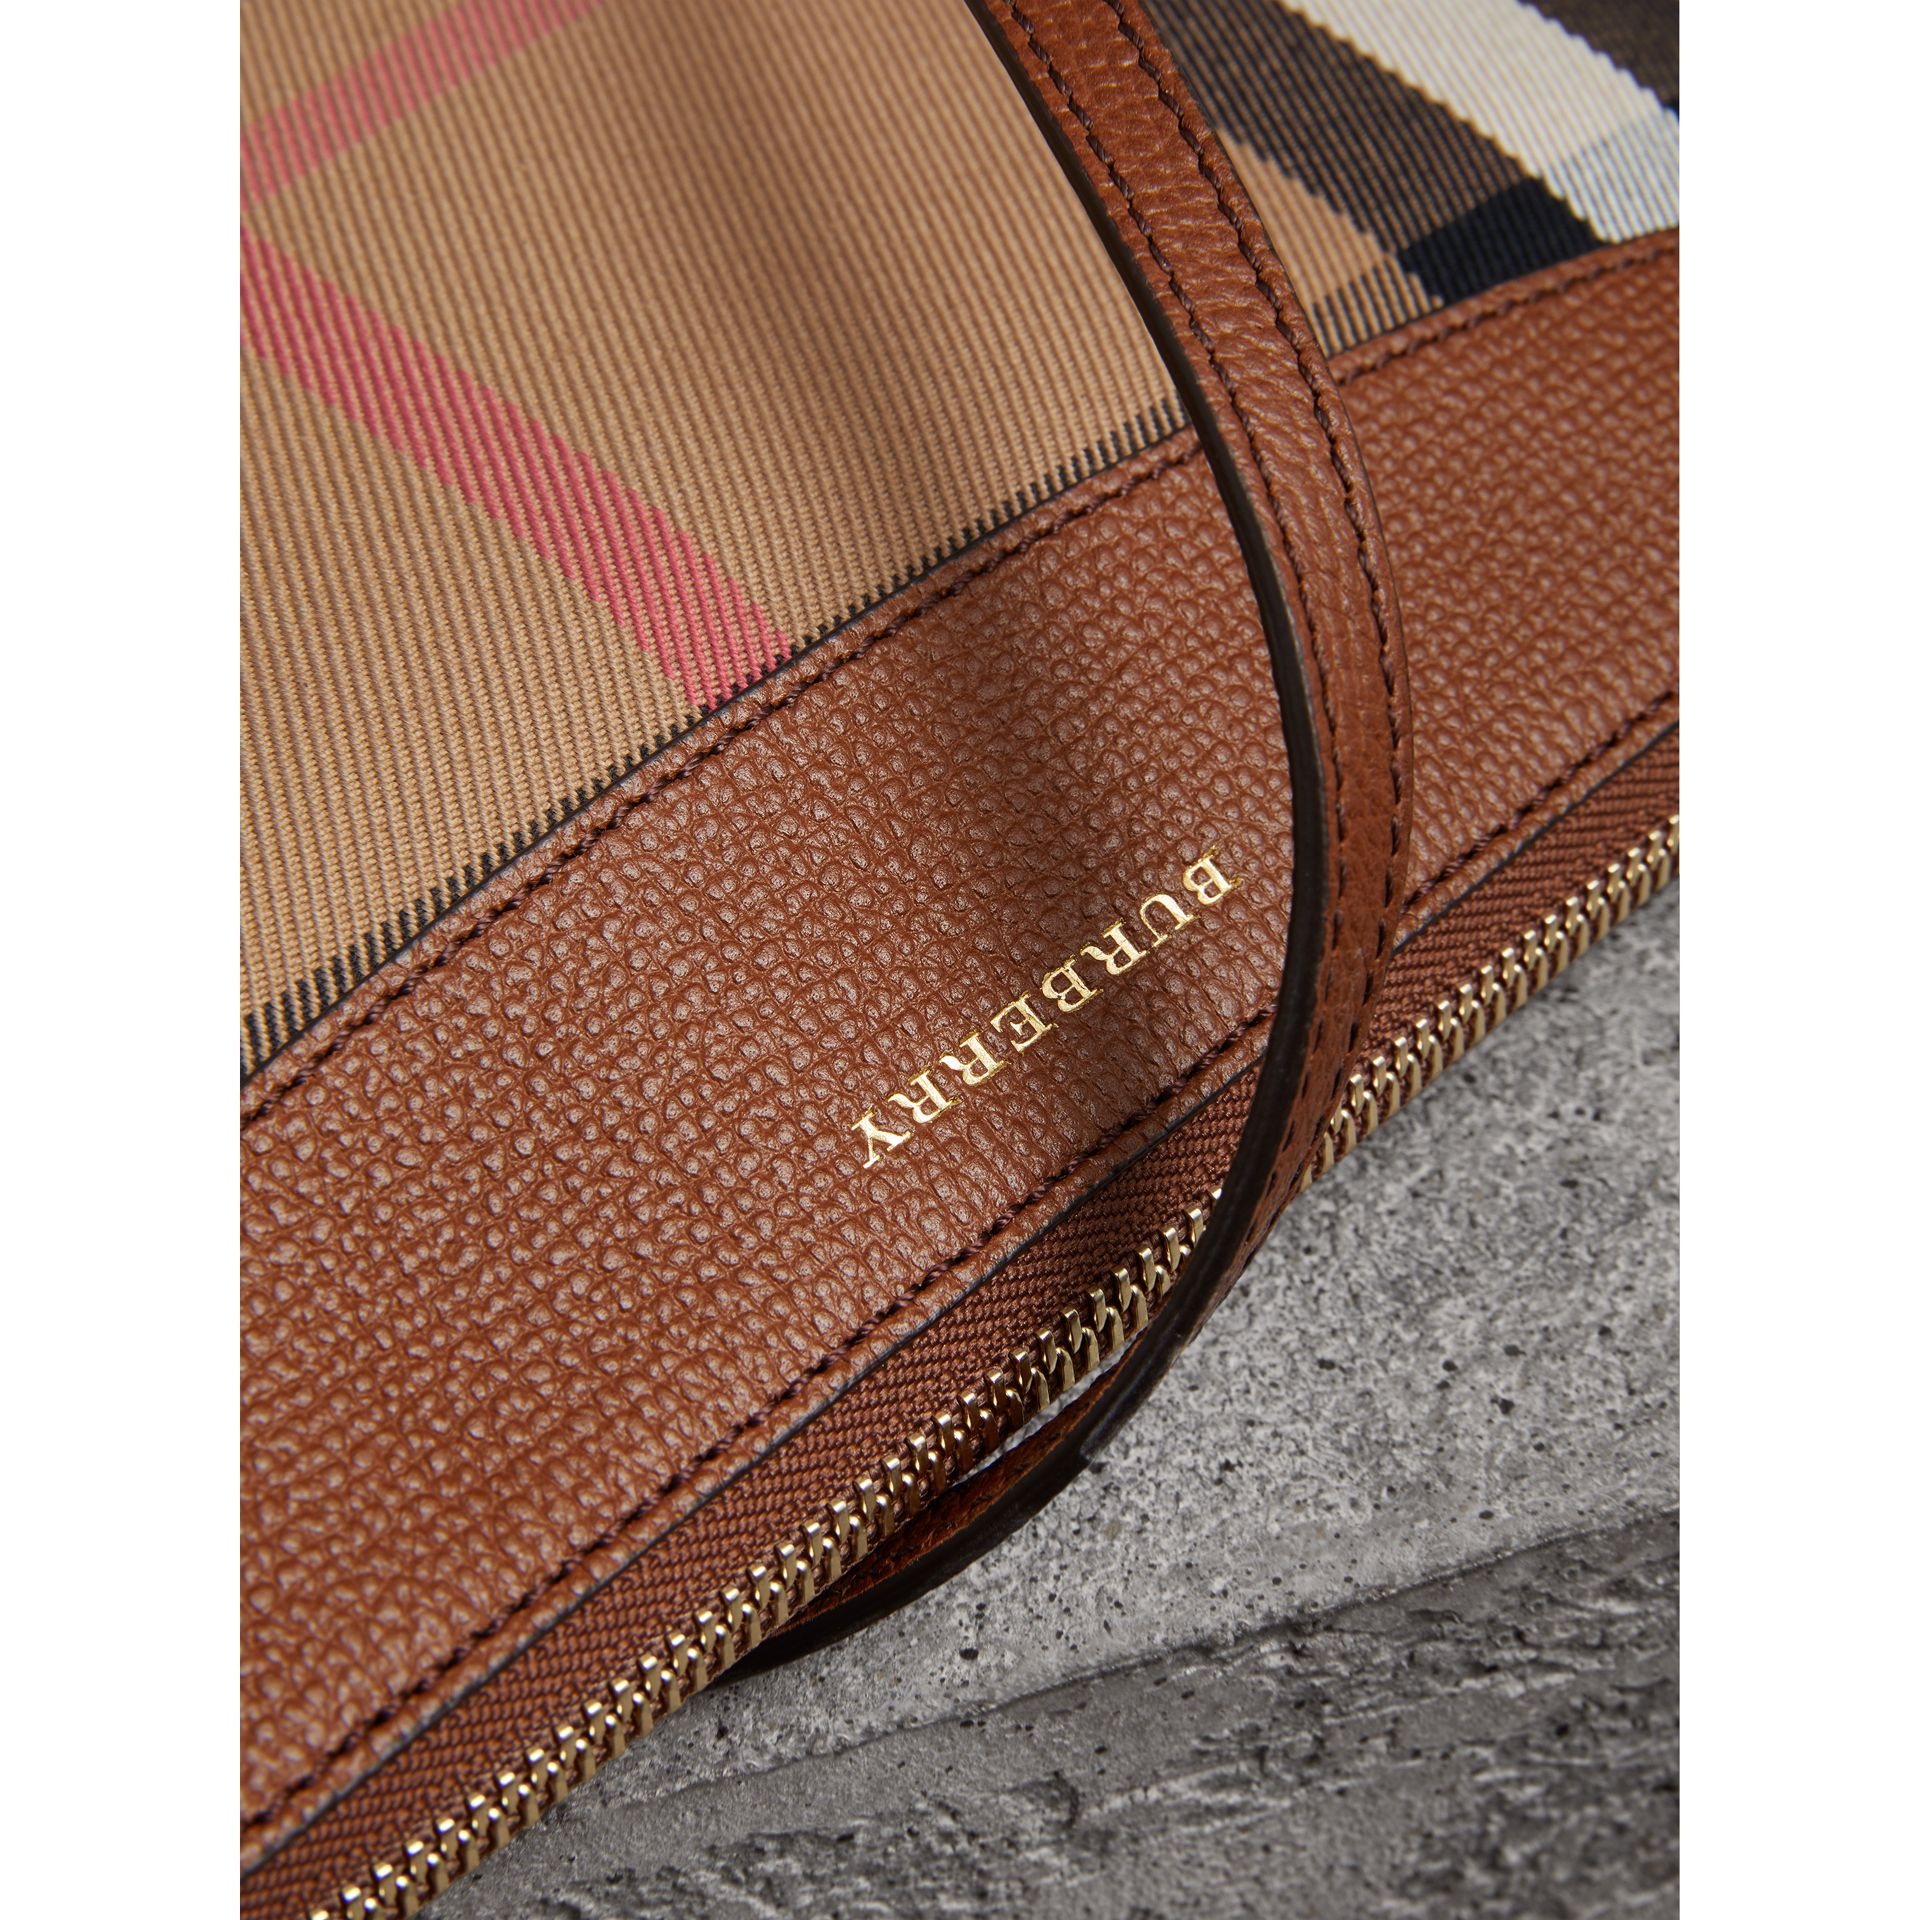 House Check and Leather Clutch Bag in Tan - Women | Burberry Australia - gallery image 1